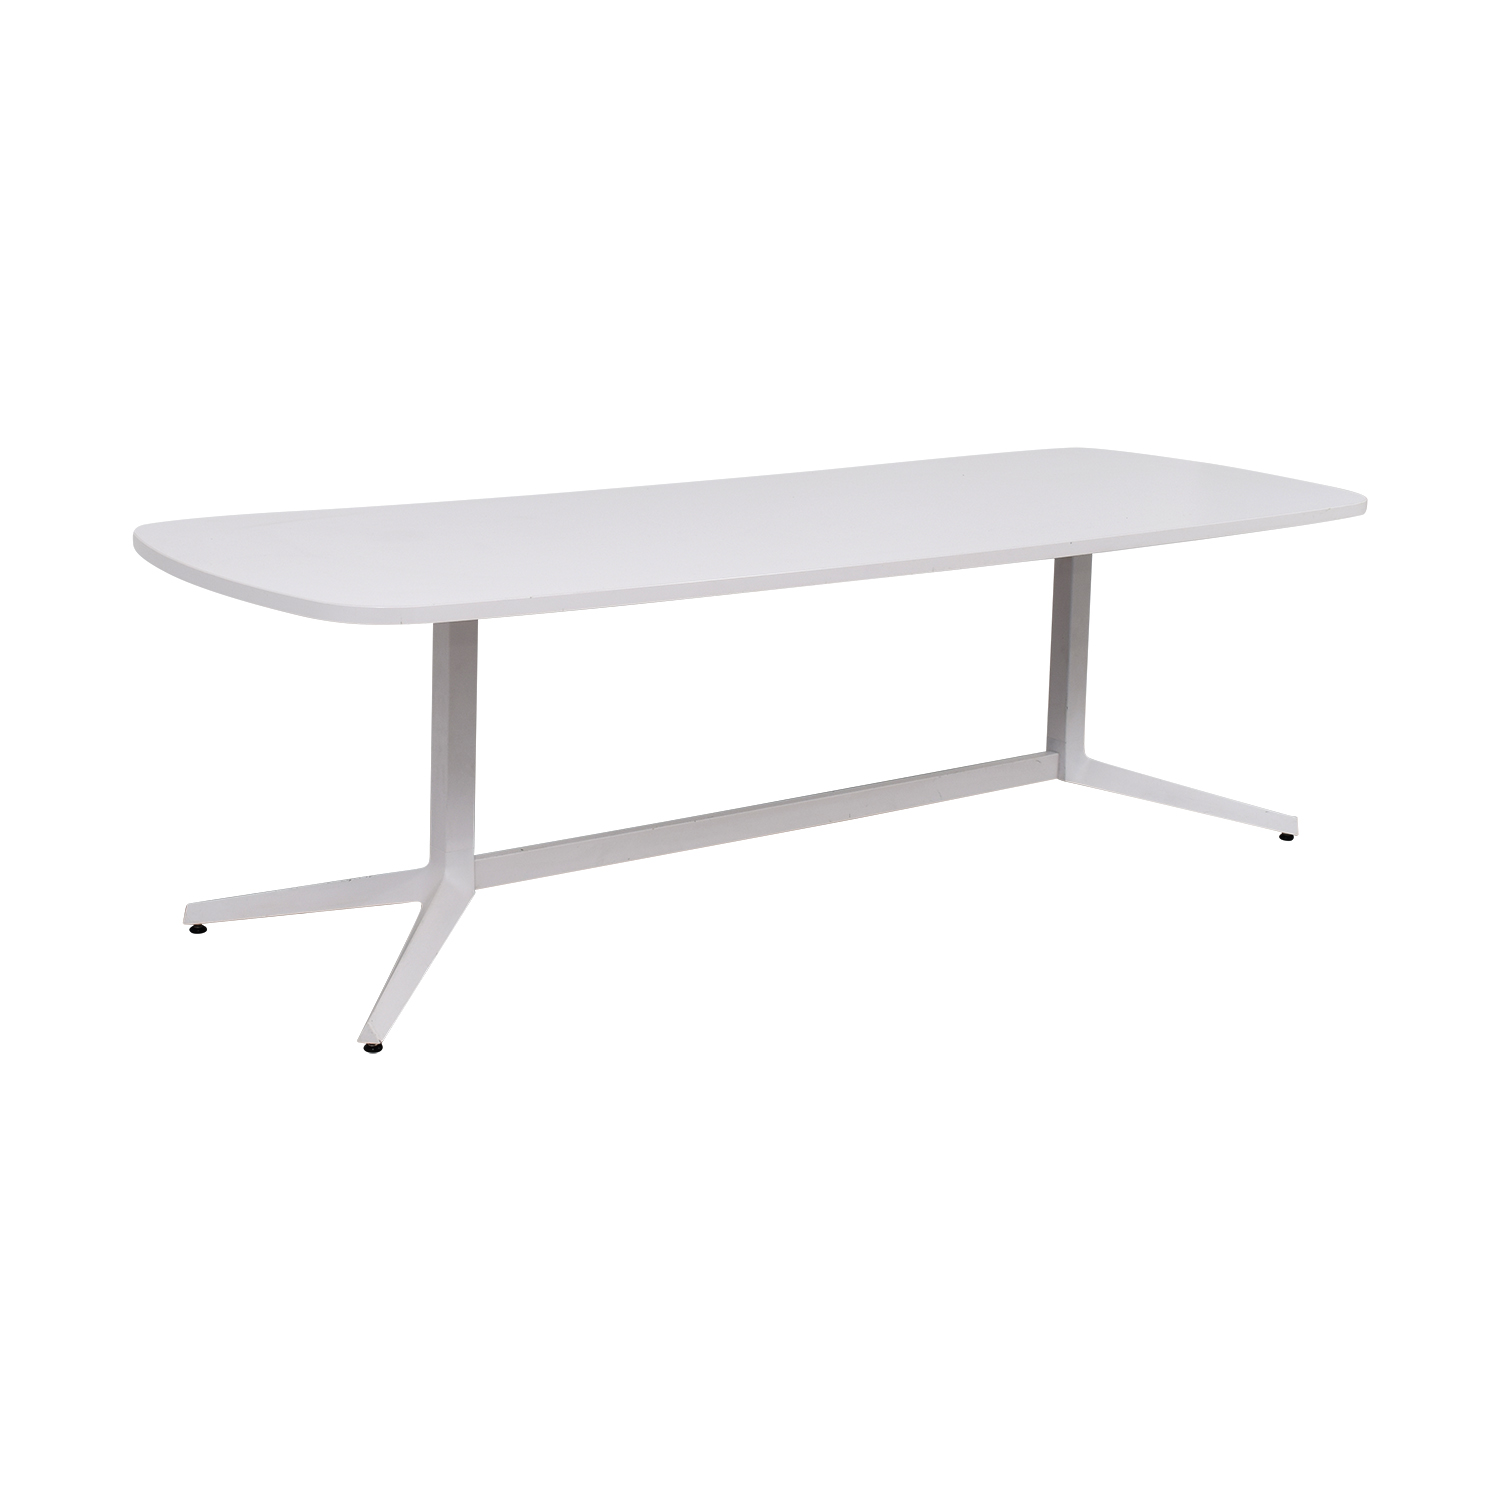 OFF Knoll Knoll White Conference Table Tables - Second hand conference table